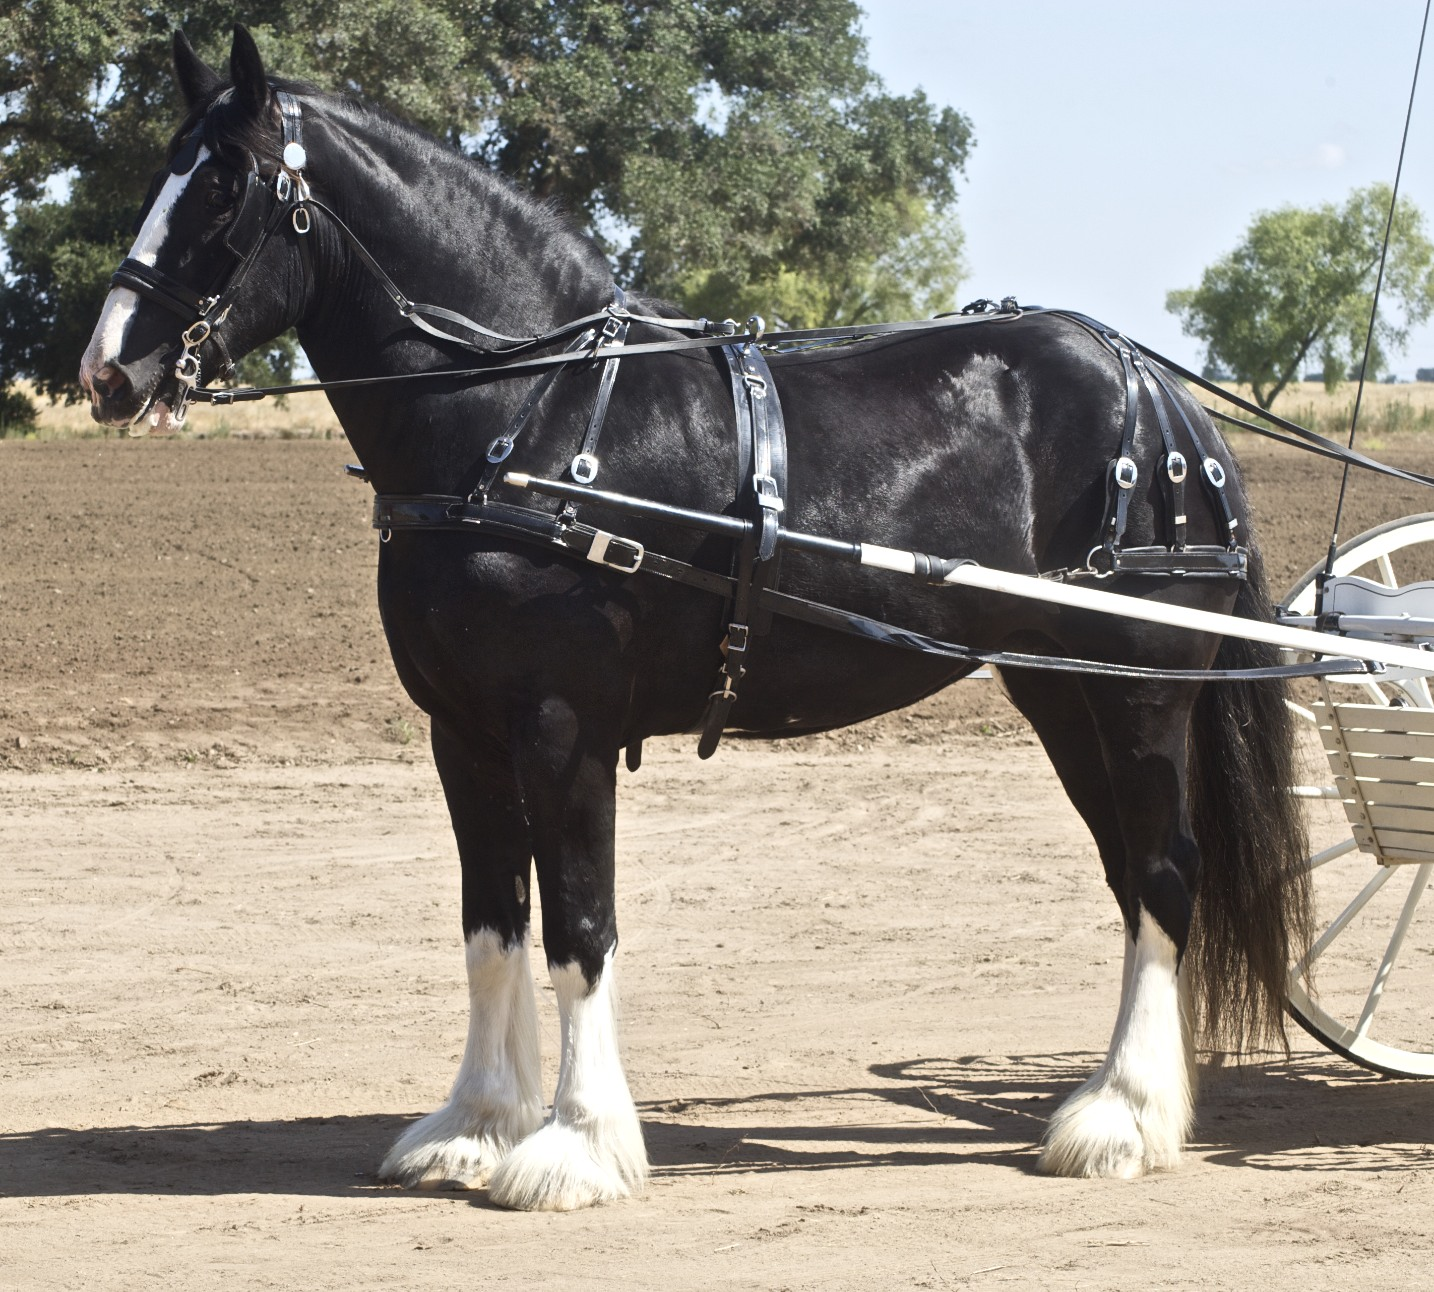 Source: https://en.wikipedia.org/wiki/Shire_horse#/media/File:Shire.jpg